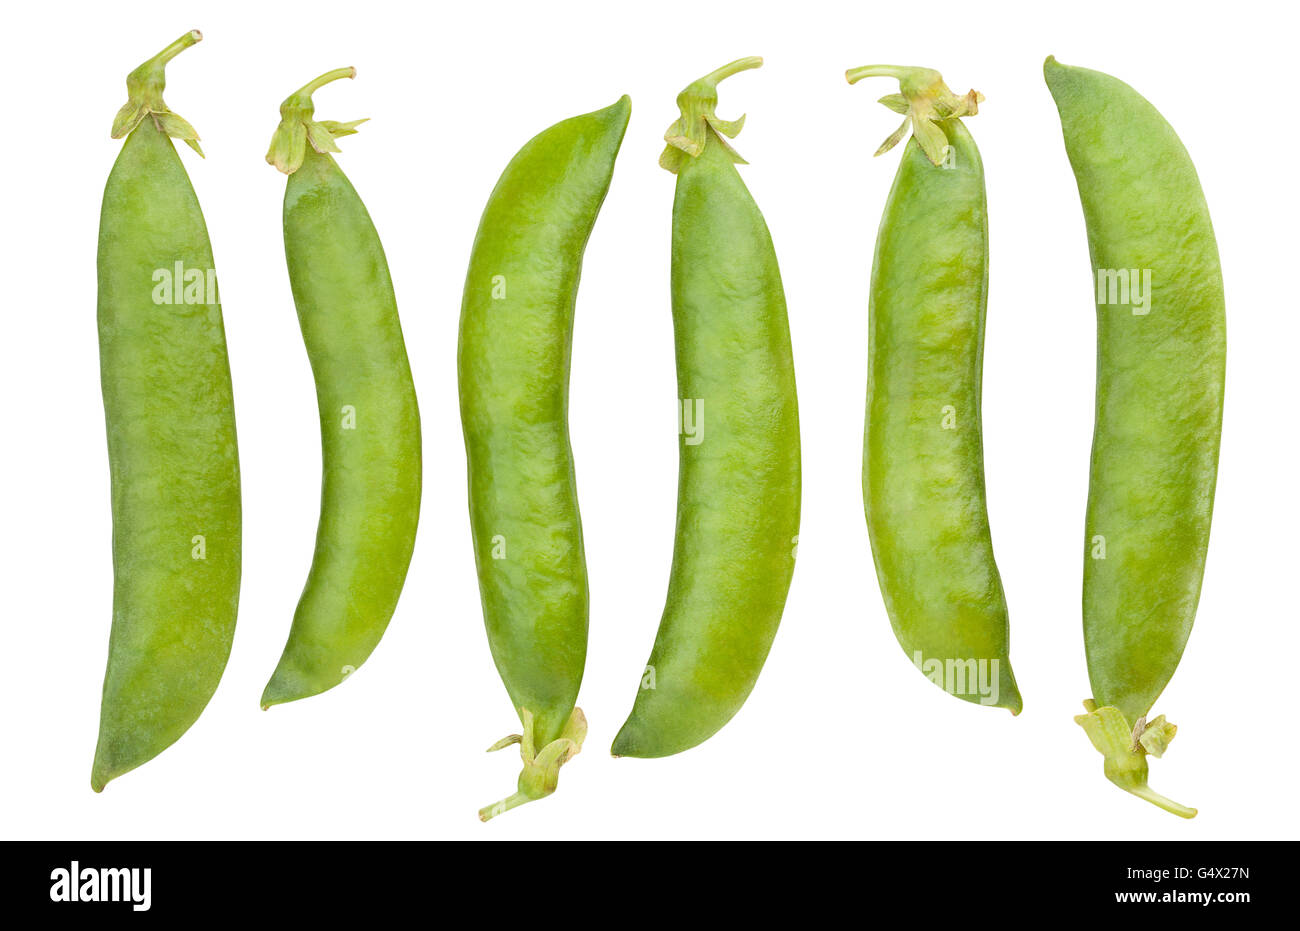 peas in a pod isolated - Stock Image